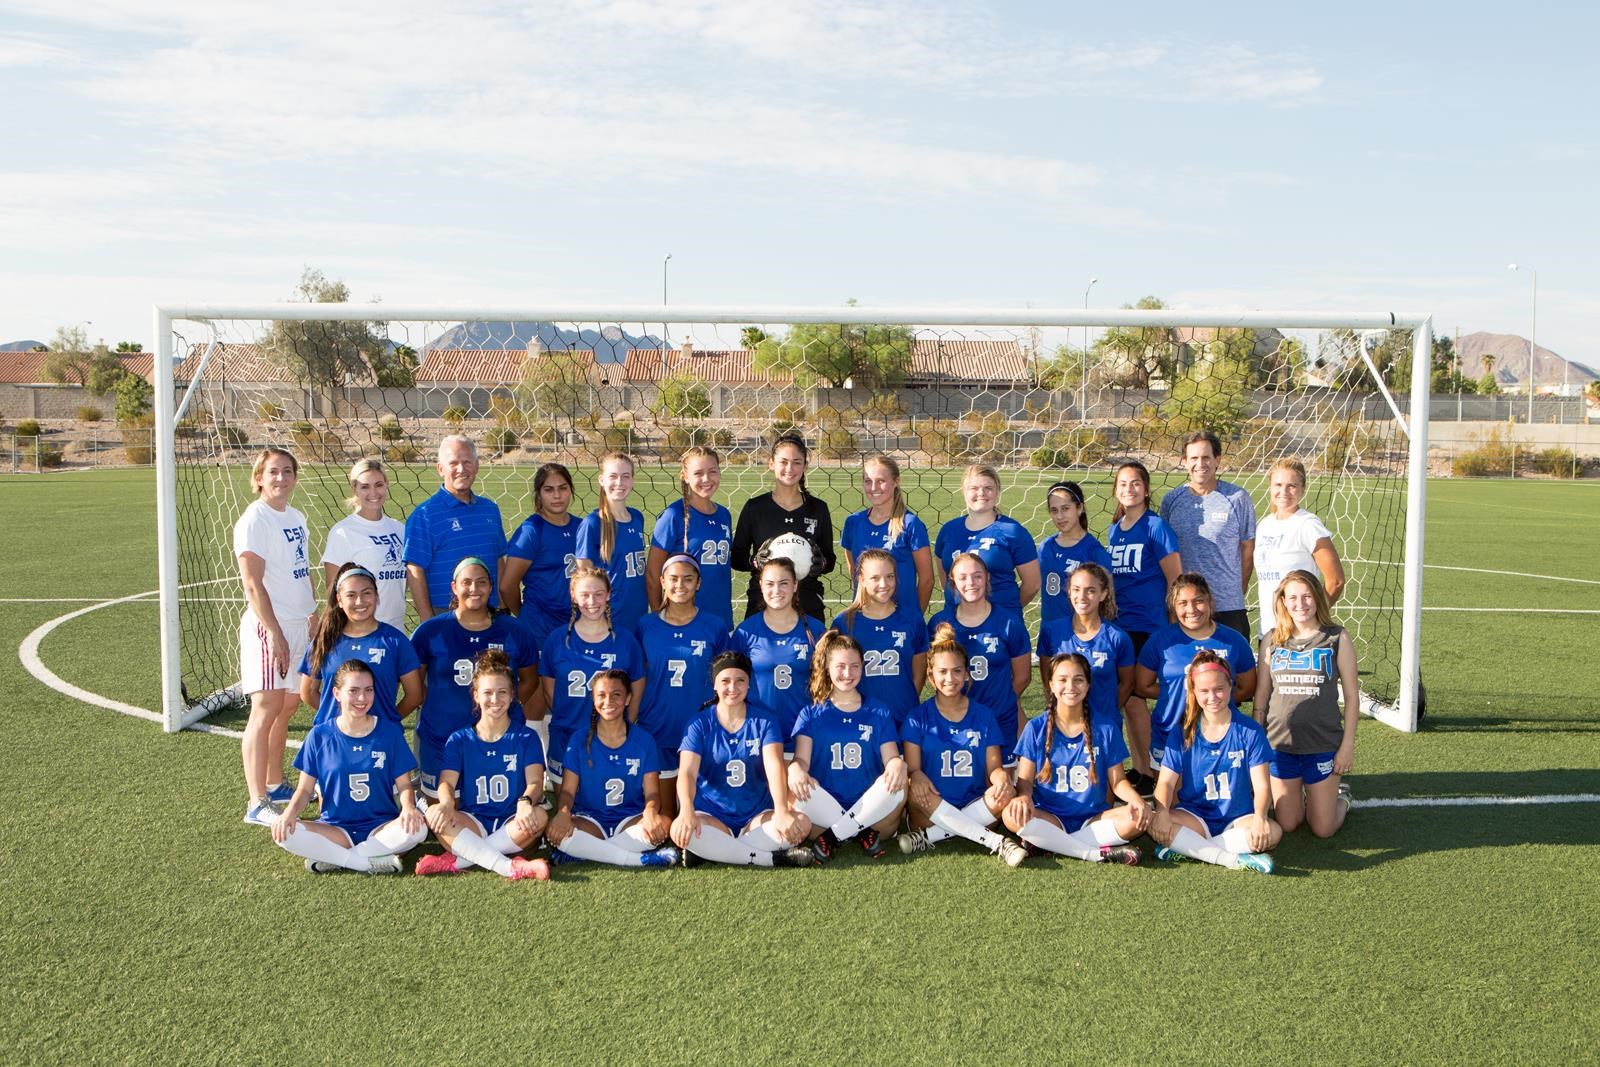 2017 Women's Soccer Roster - College of Southern Nevada